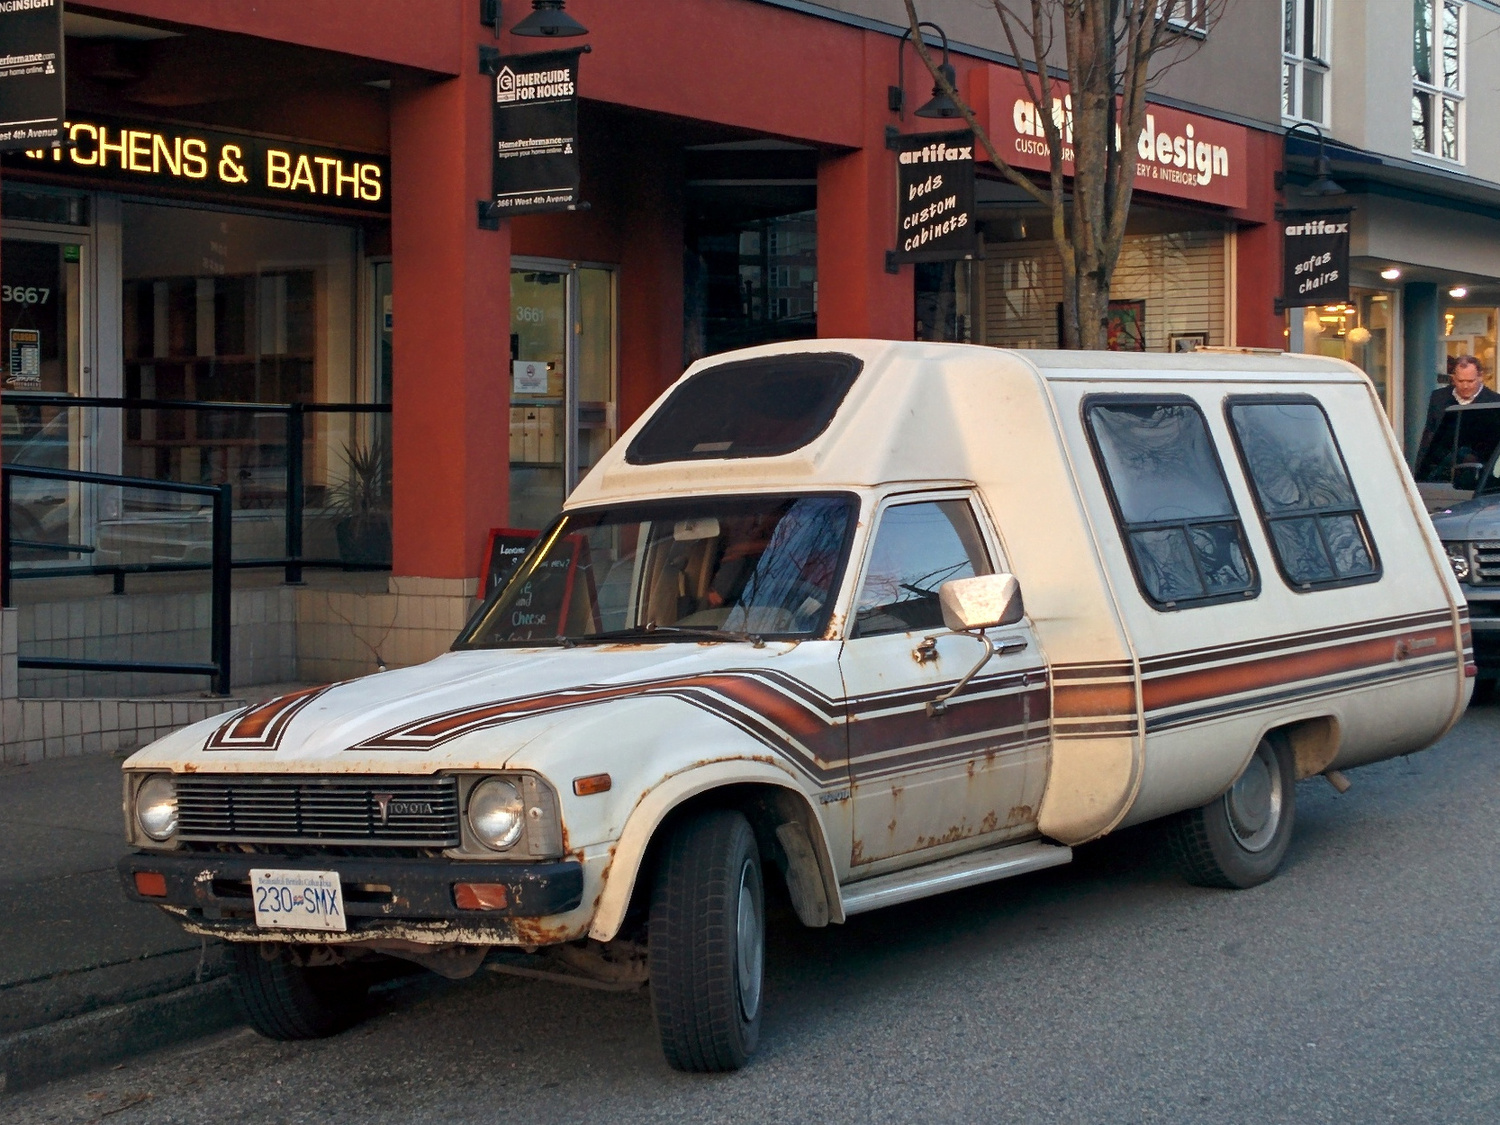 Old Parked Cars Vancouver: 1981 Toyota Vanguard Camper Conversion